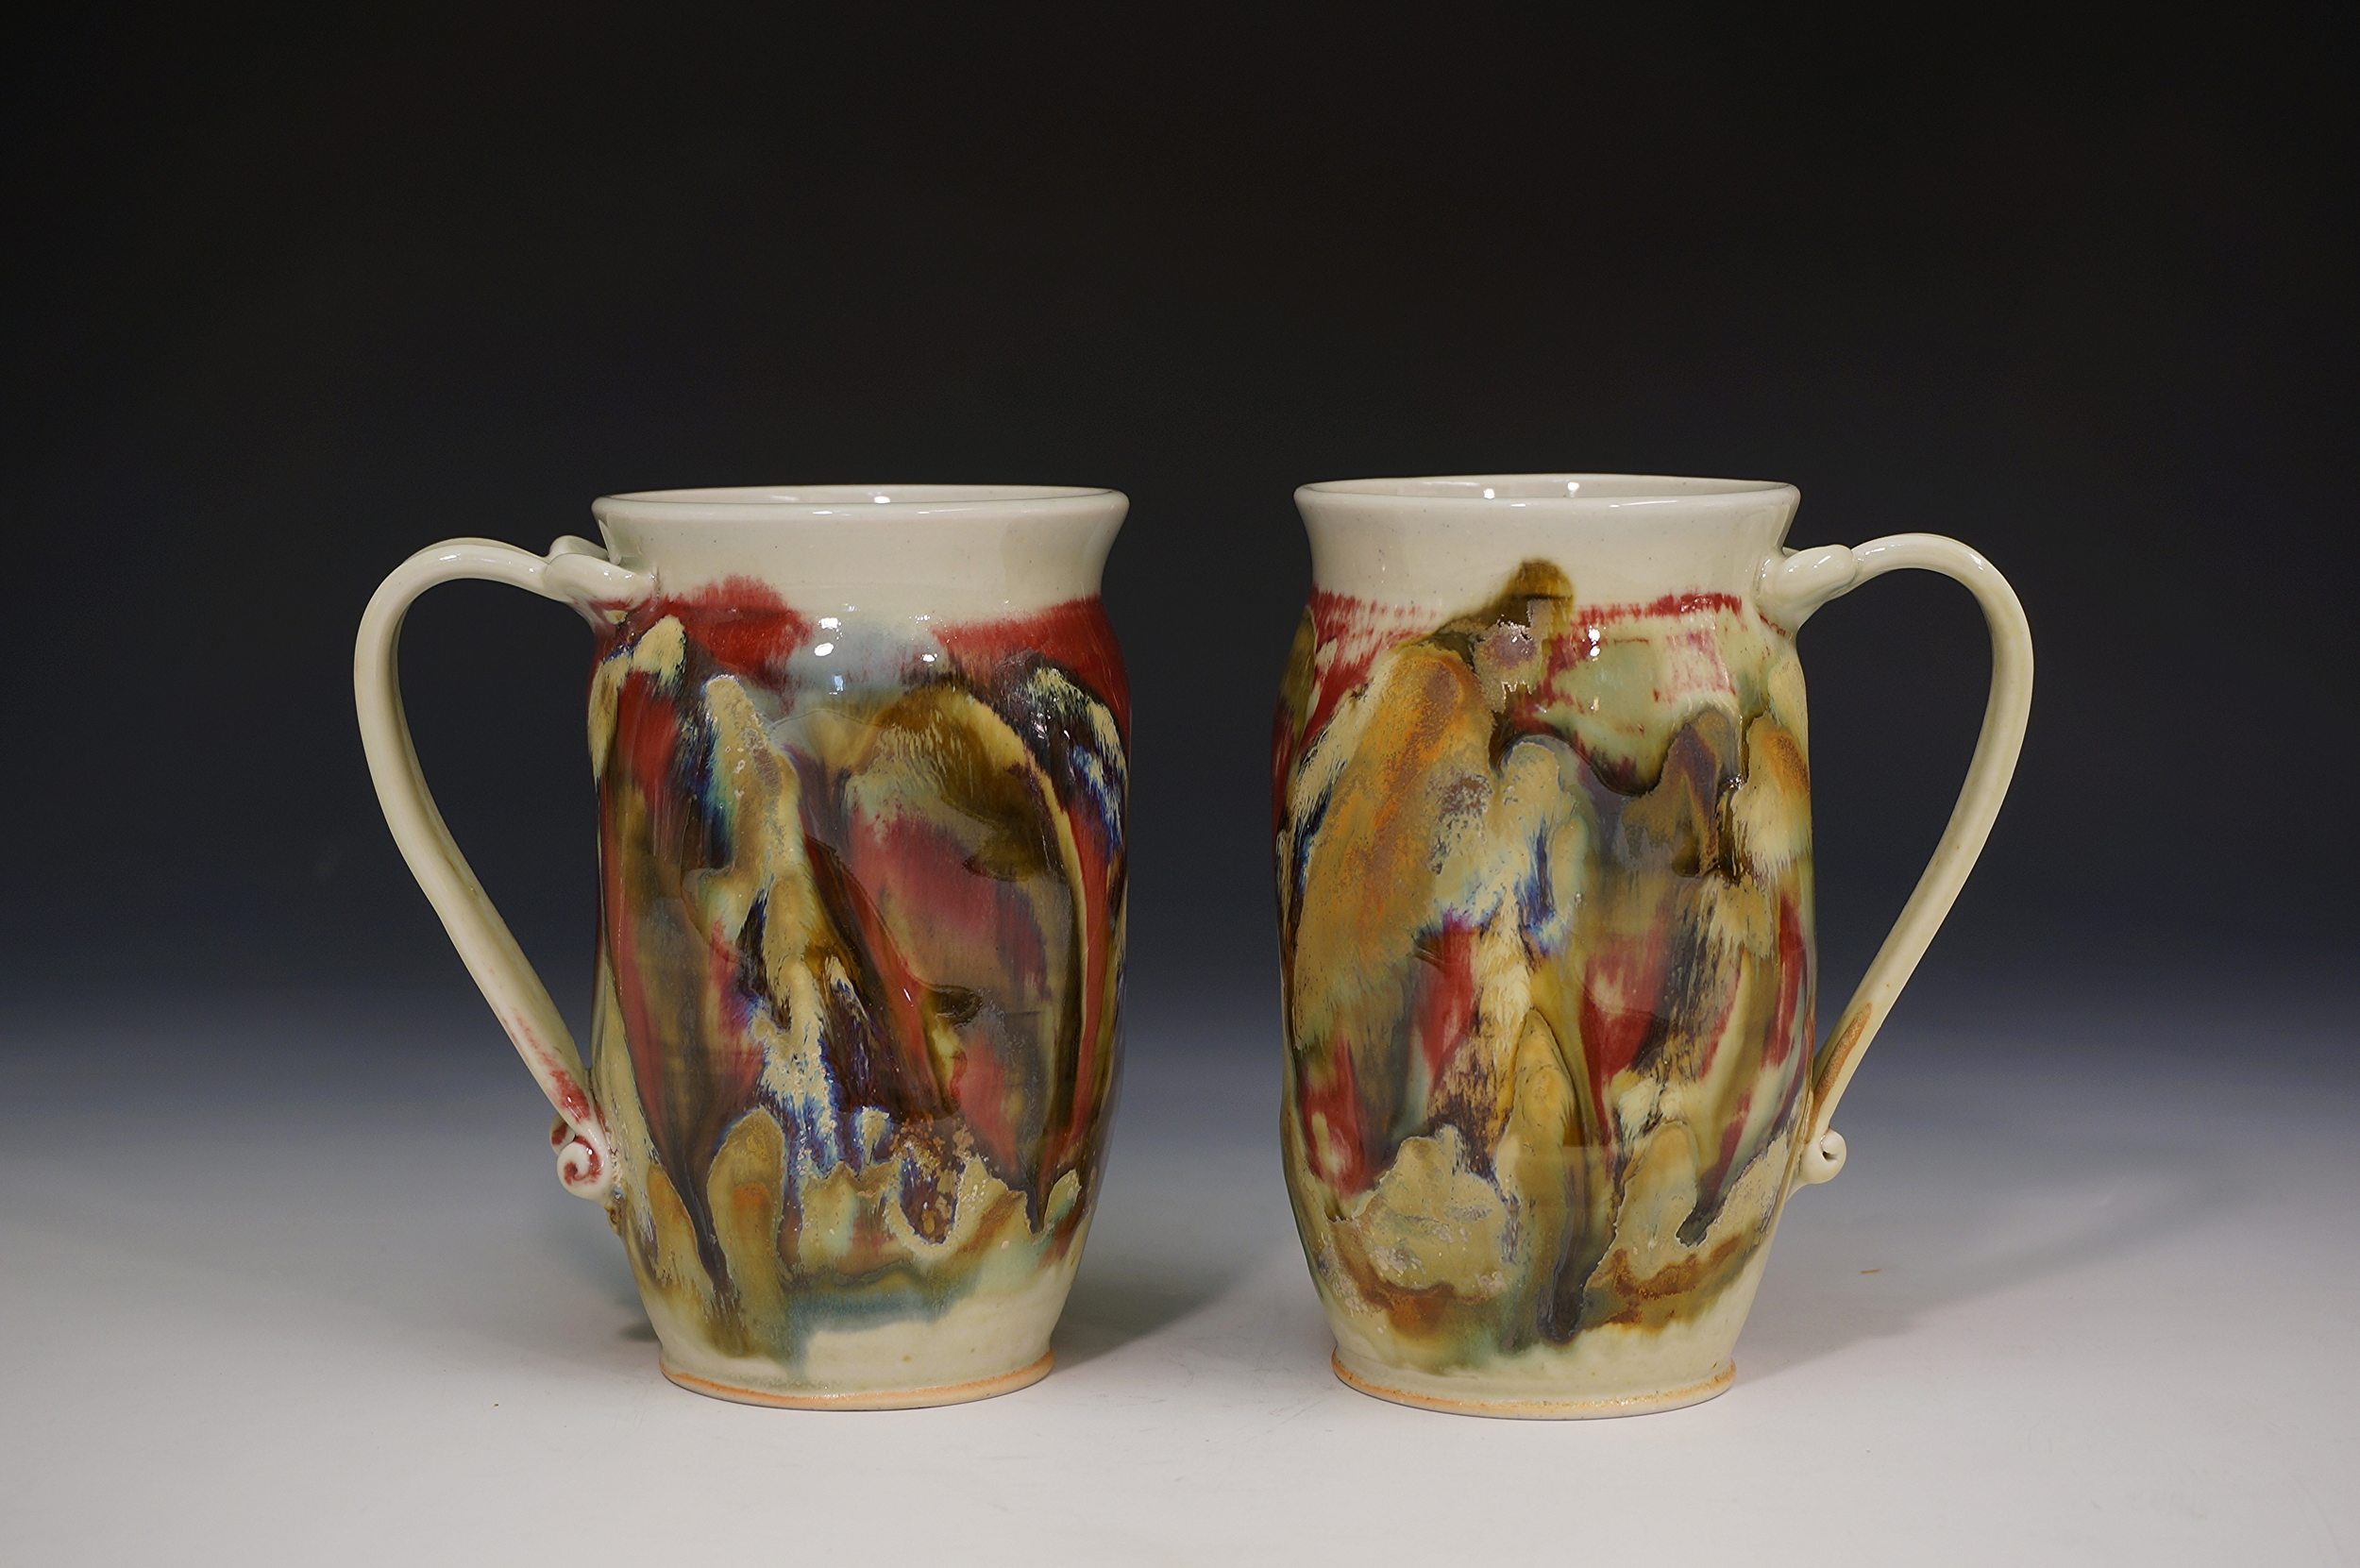 2 sanity mugs in copper red, reduction wood fired with oxide decorations.